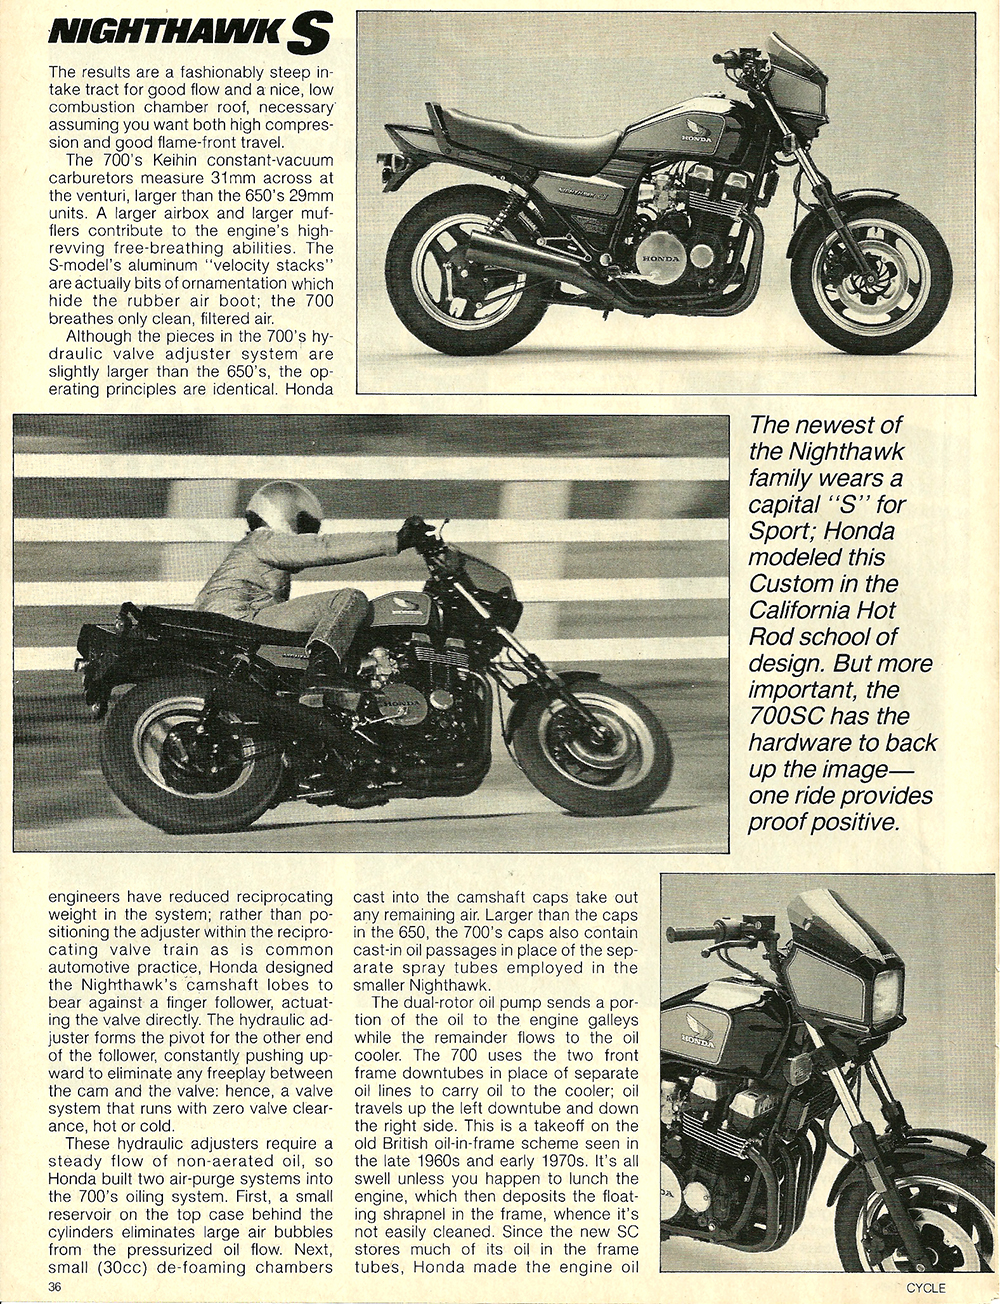 1984 Honda CB700SC Nighthawk S road test 5.jpg